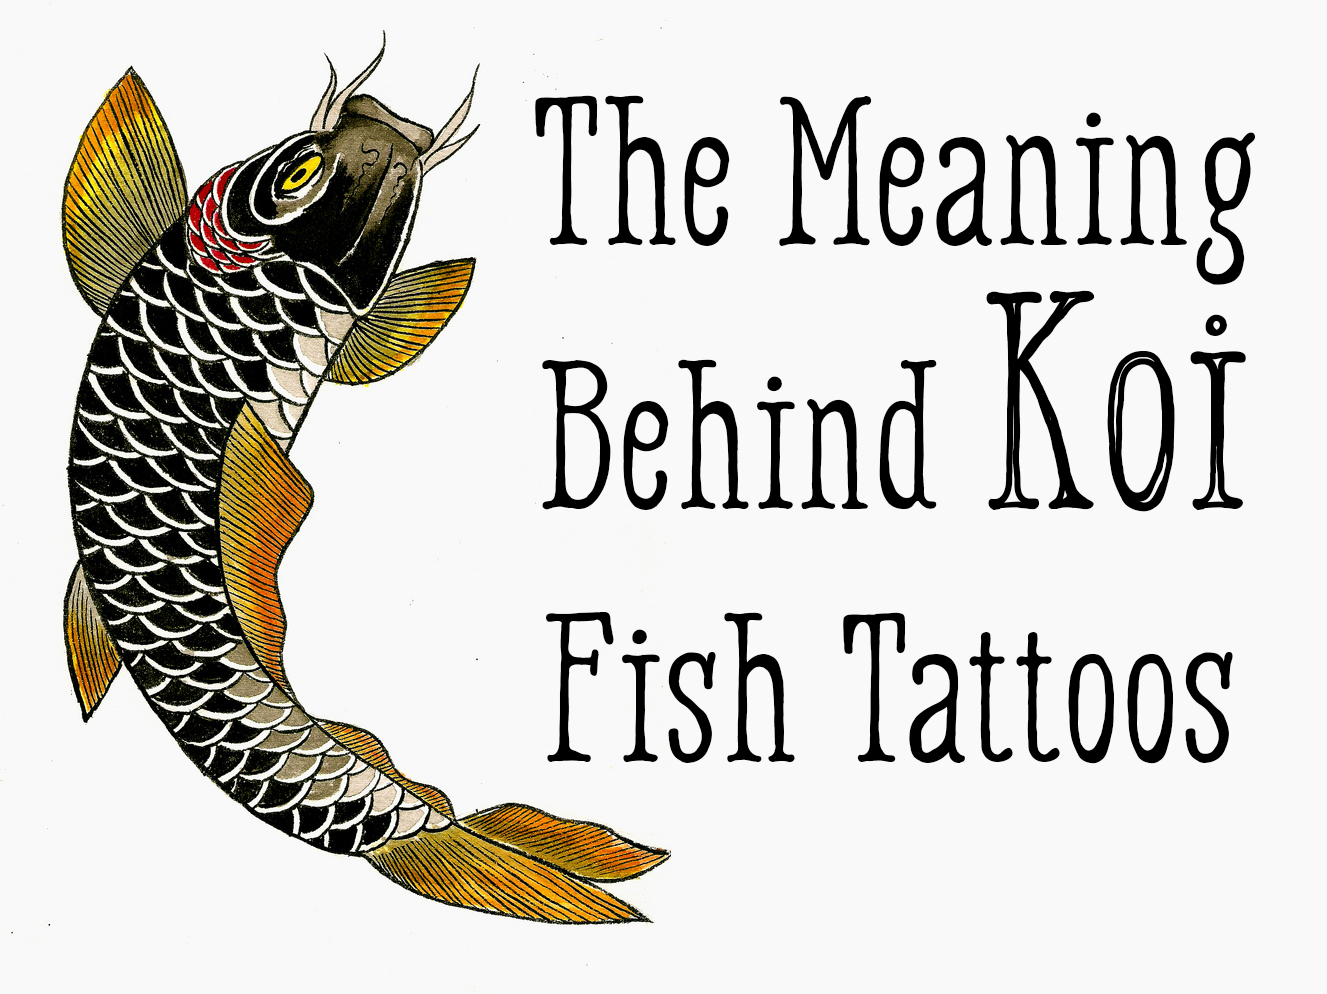 Koi fish tattoo meaning color direction and more for Types of koi fish and meanings